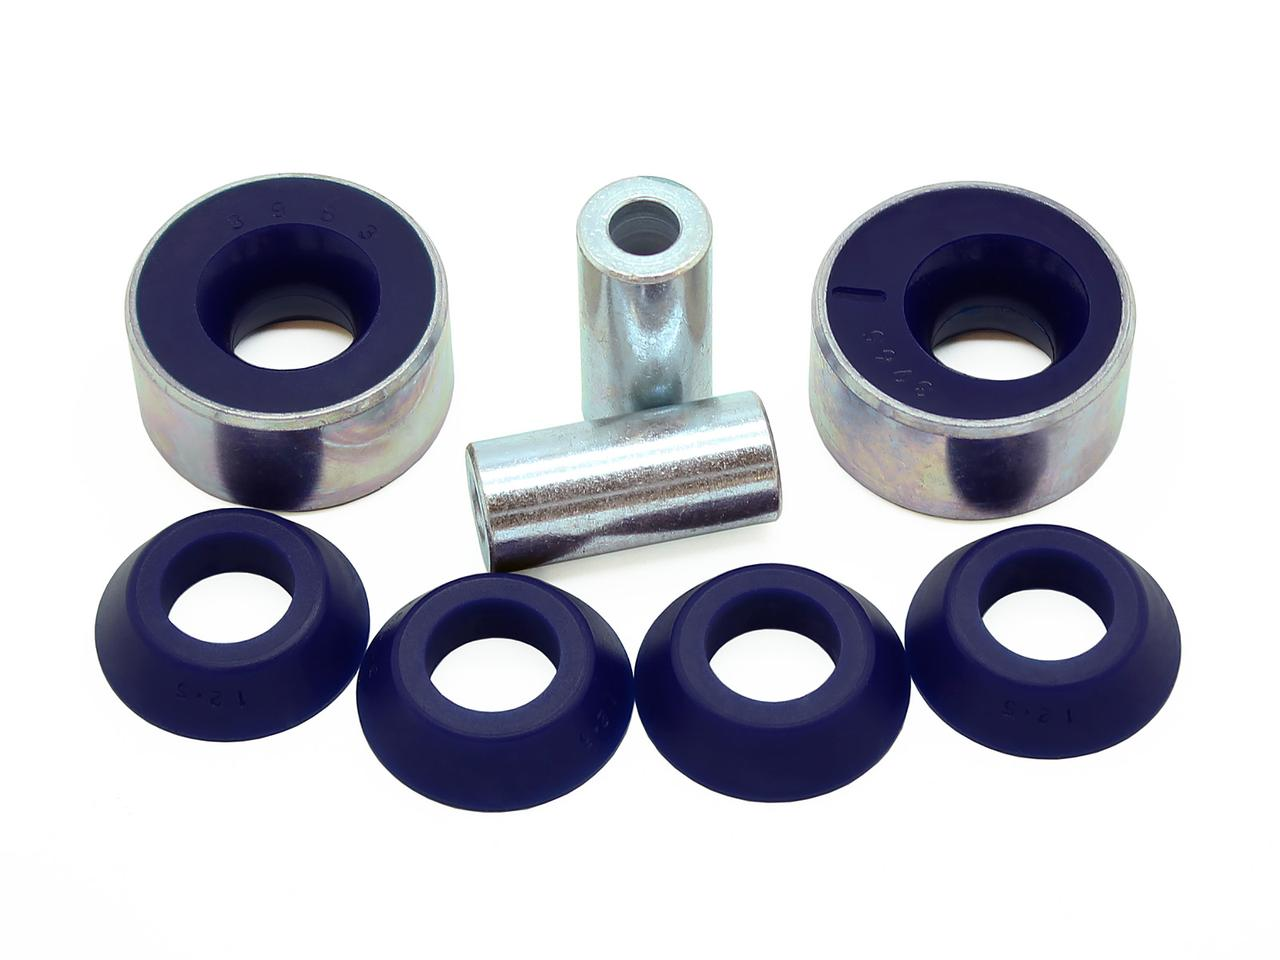 Renault Clio Mk3 SuperPro Control Arm Lower-Rear Bush Kit: Performance Alignment